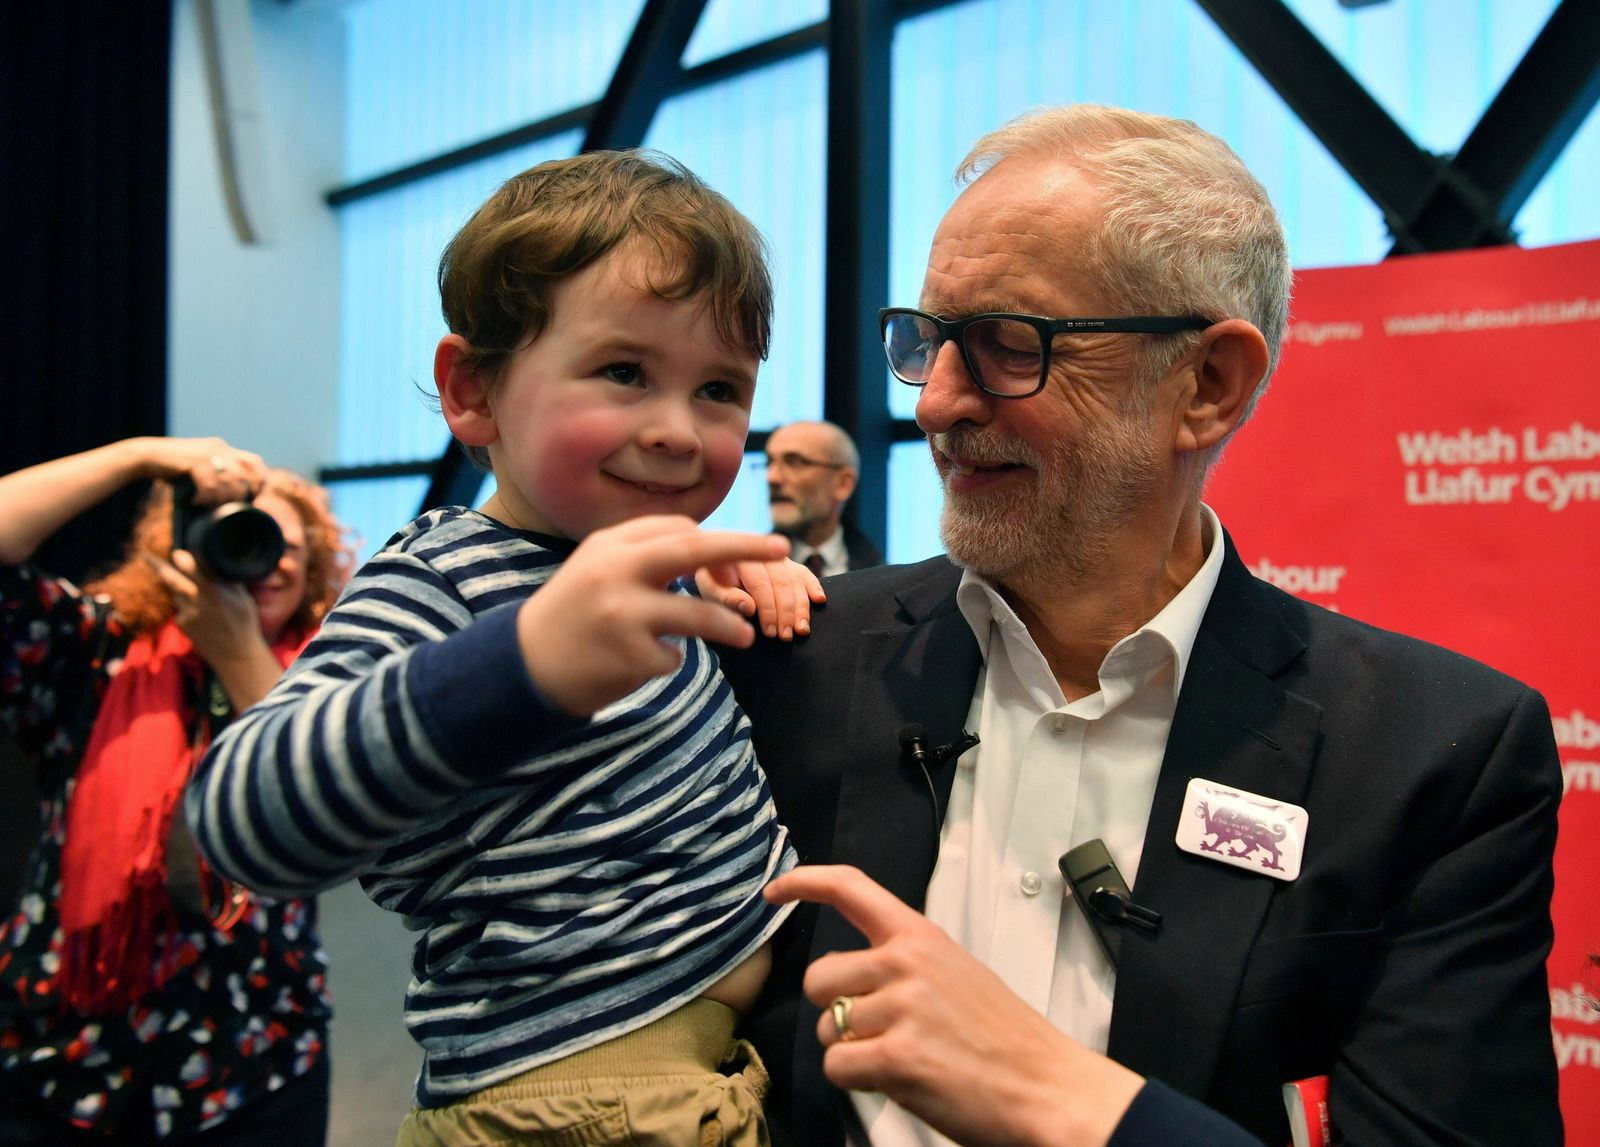 Labour Leader Jeremy Corbyn interacts with three years old Noa Williams Roberts after addressing a members' rally at Bangor University, while on the General Election campaign trail in Bangor, Wales, Sunday, Dec. 8, 2019. (Ben Birchall/PA via AP)